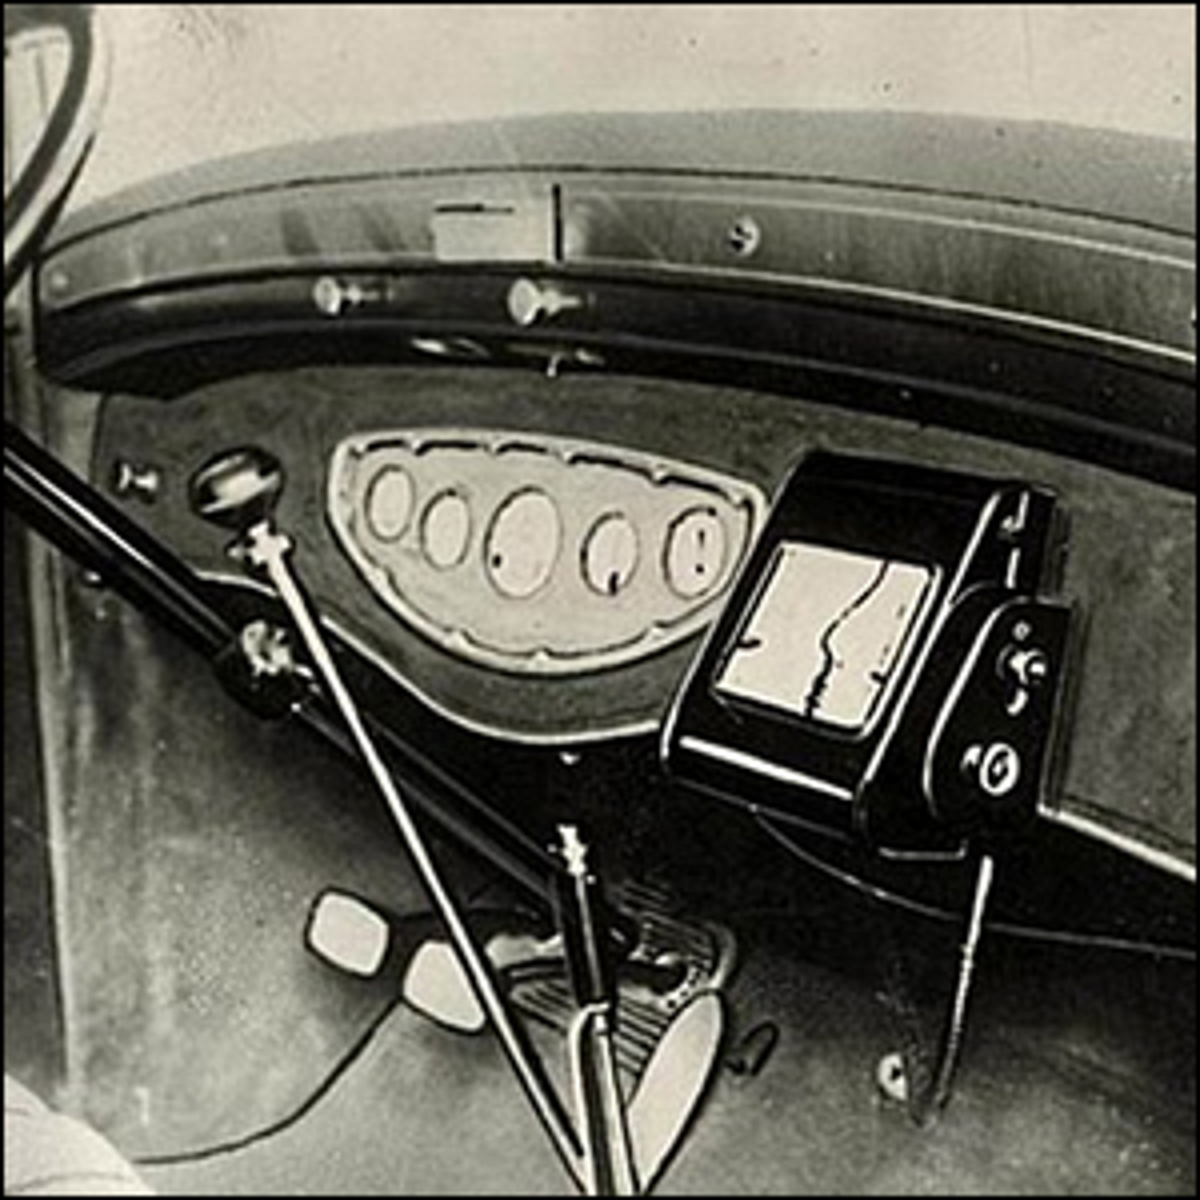 A photo of the Iter Avto (Iter Auto), the first in-car navigation system.